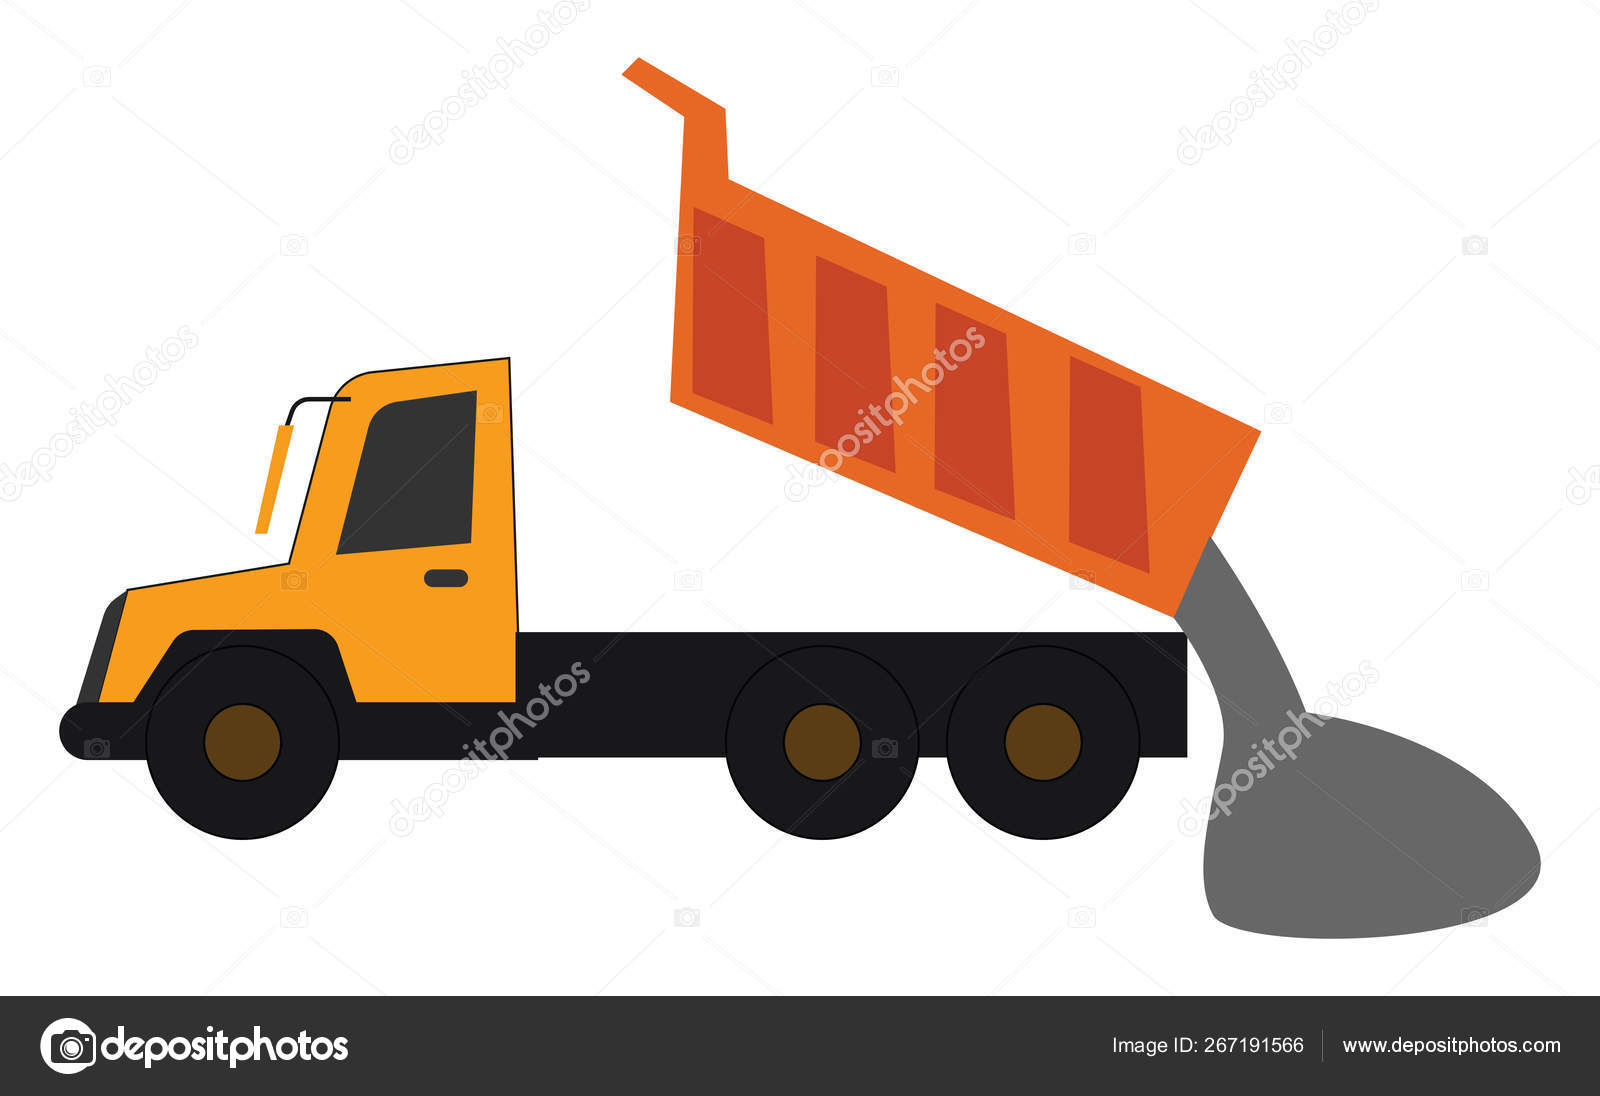 hight resolution of a yellow dump truck in operational process the loaded gravel slides out when the bed is lifted set isolated on white background viewed from the side